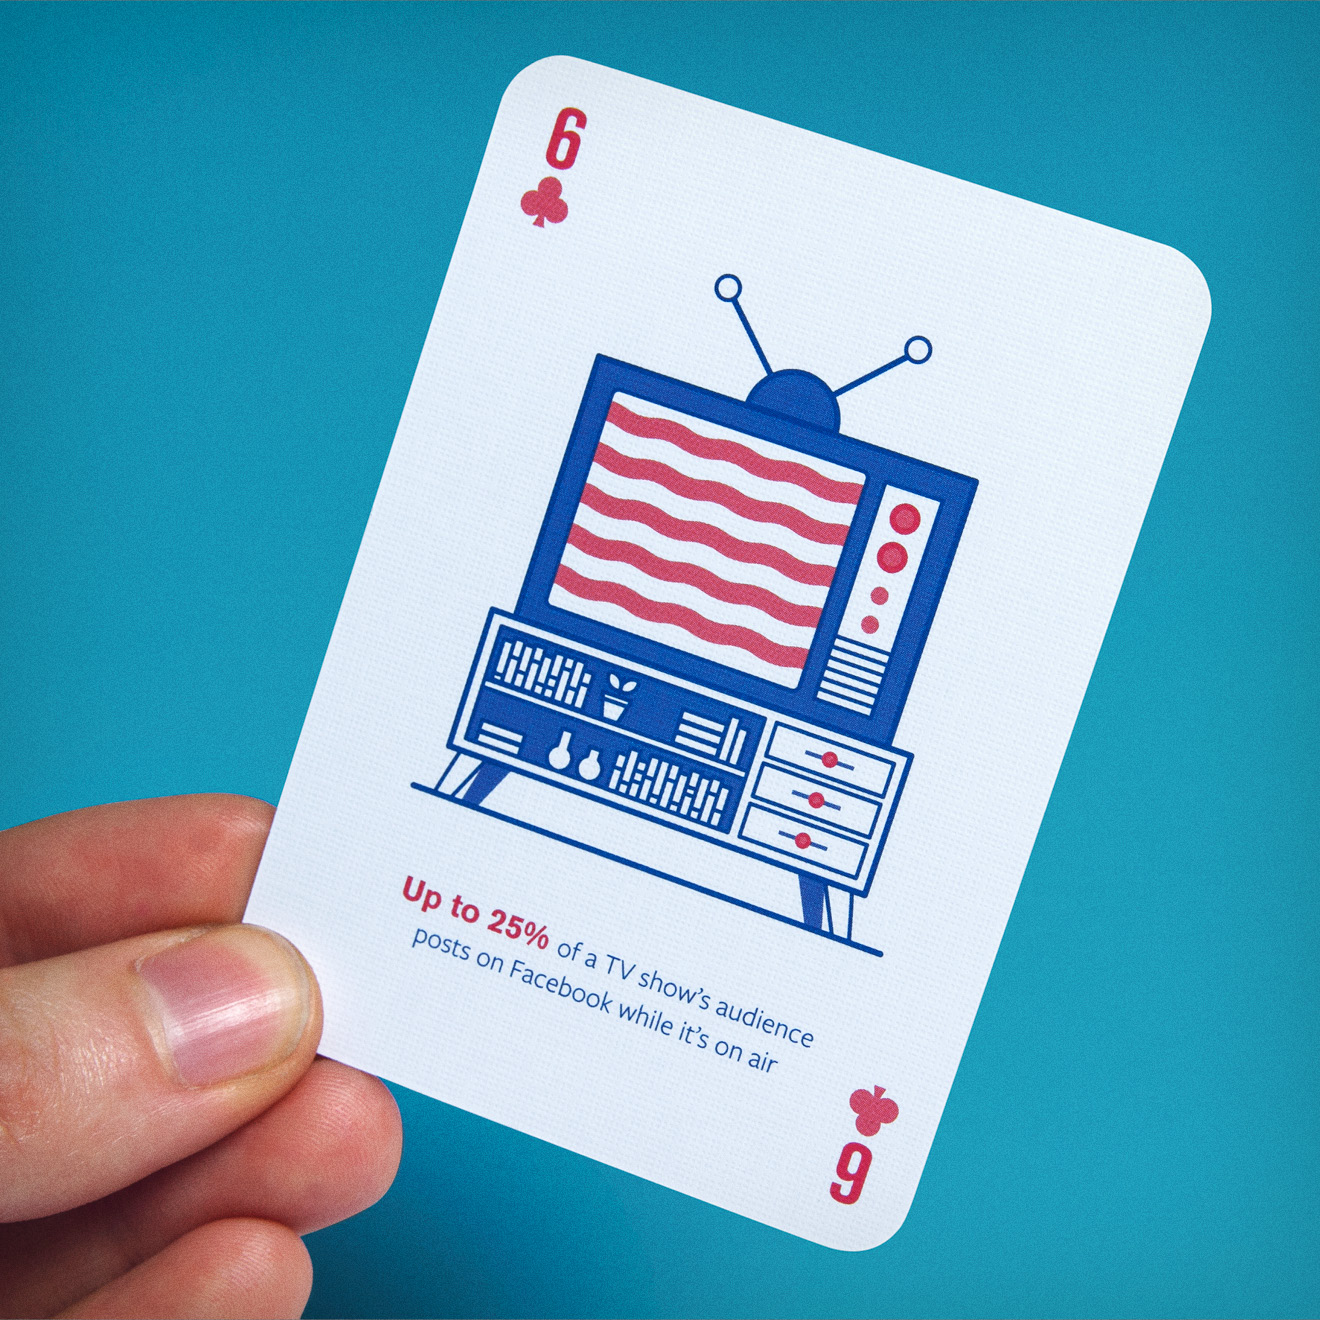 Facebook B2B marketing insights playing card with TV design by Human After All